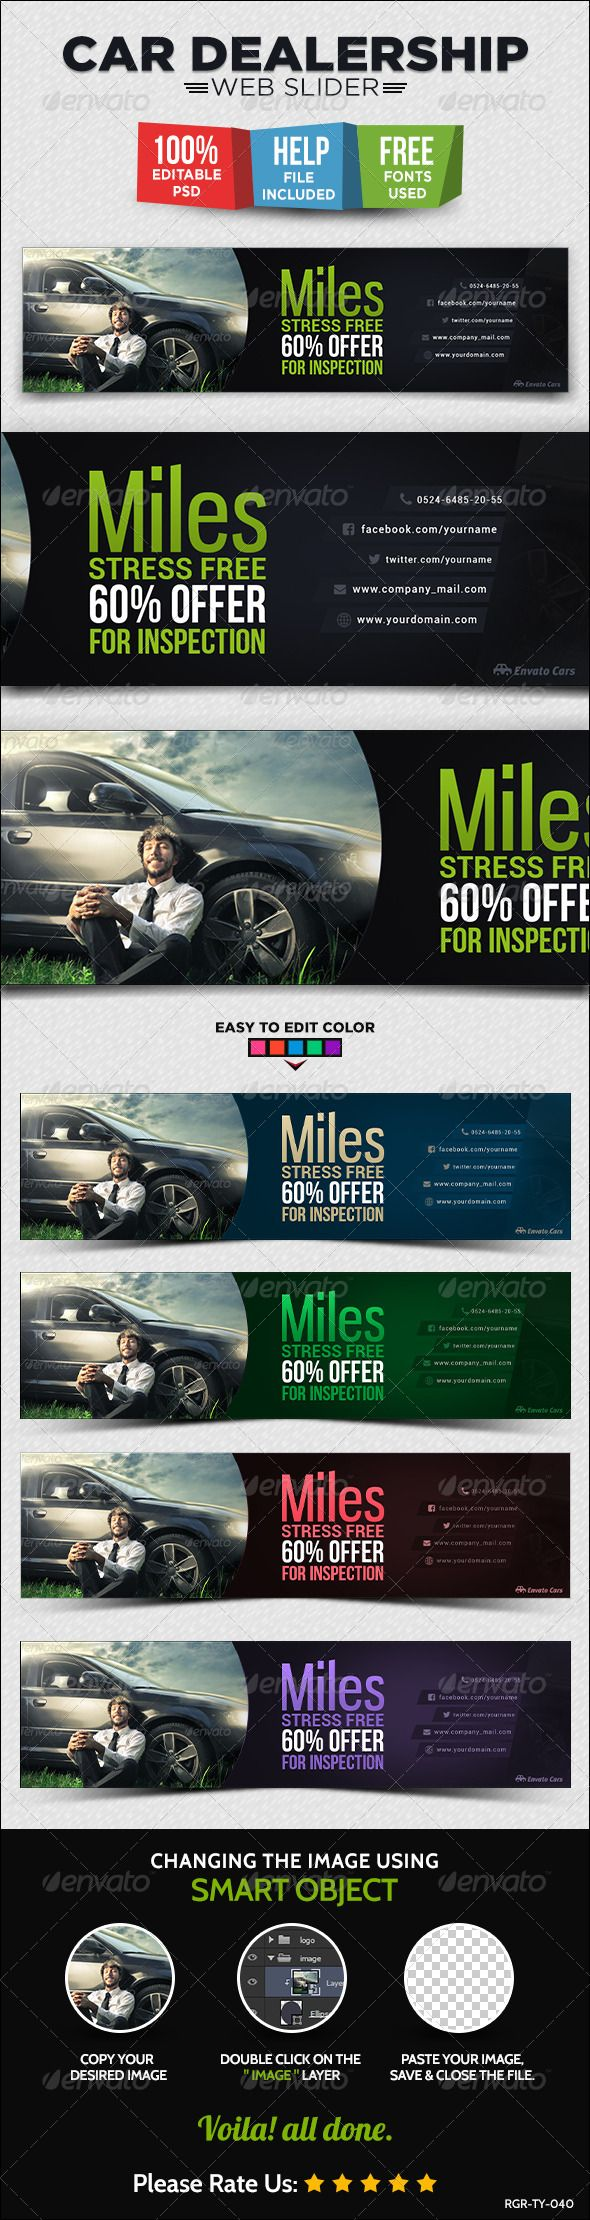 Car Dealership Web Slider Template Psd Buy And Download Http